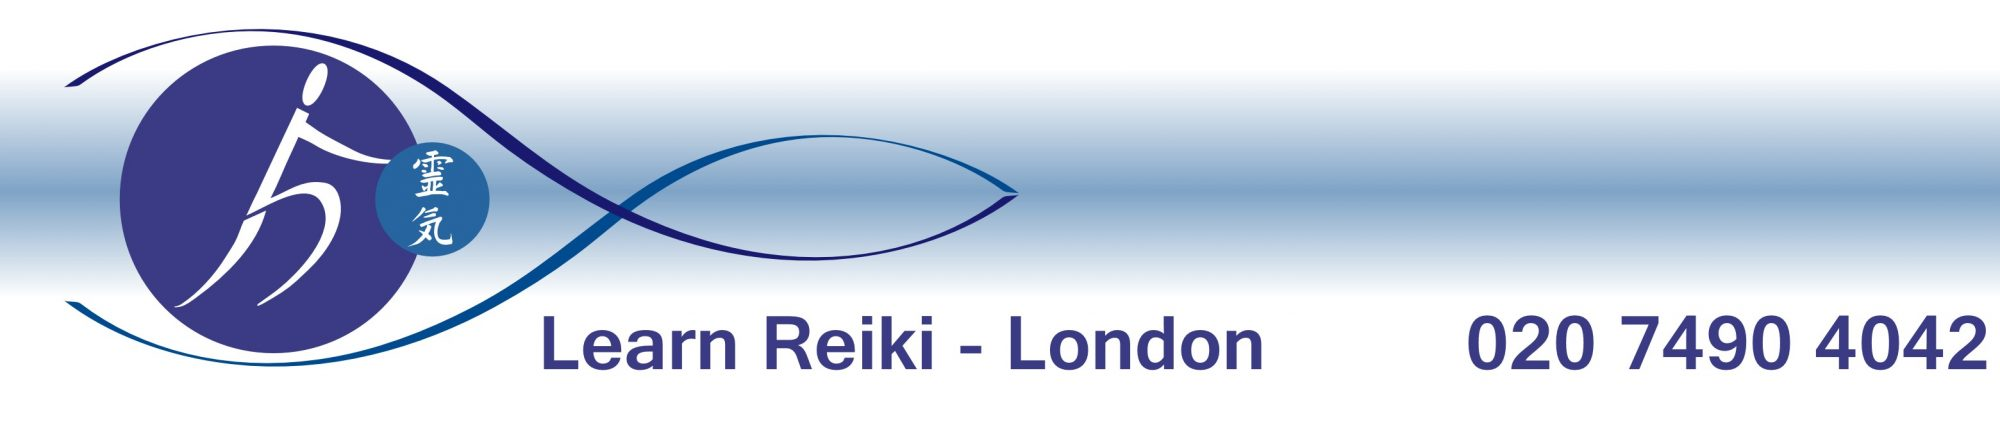 LearnReiki-London